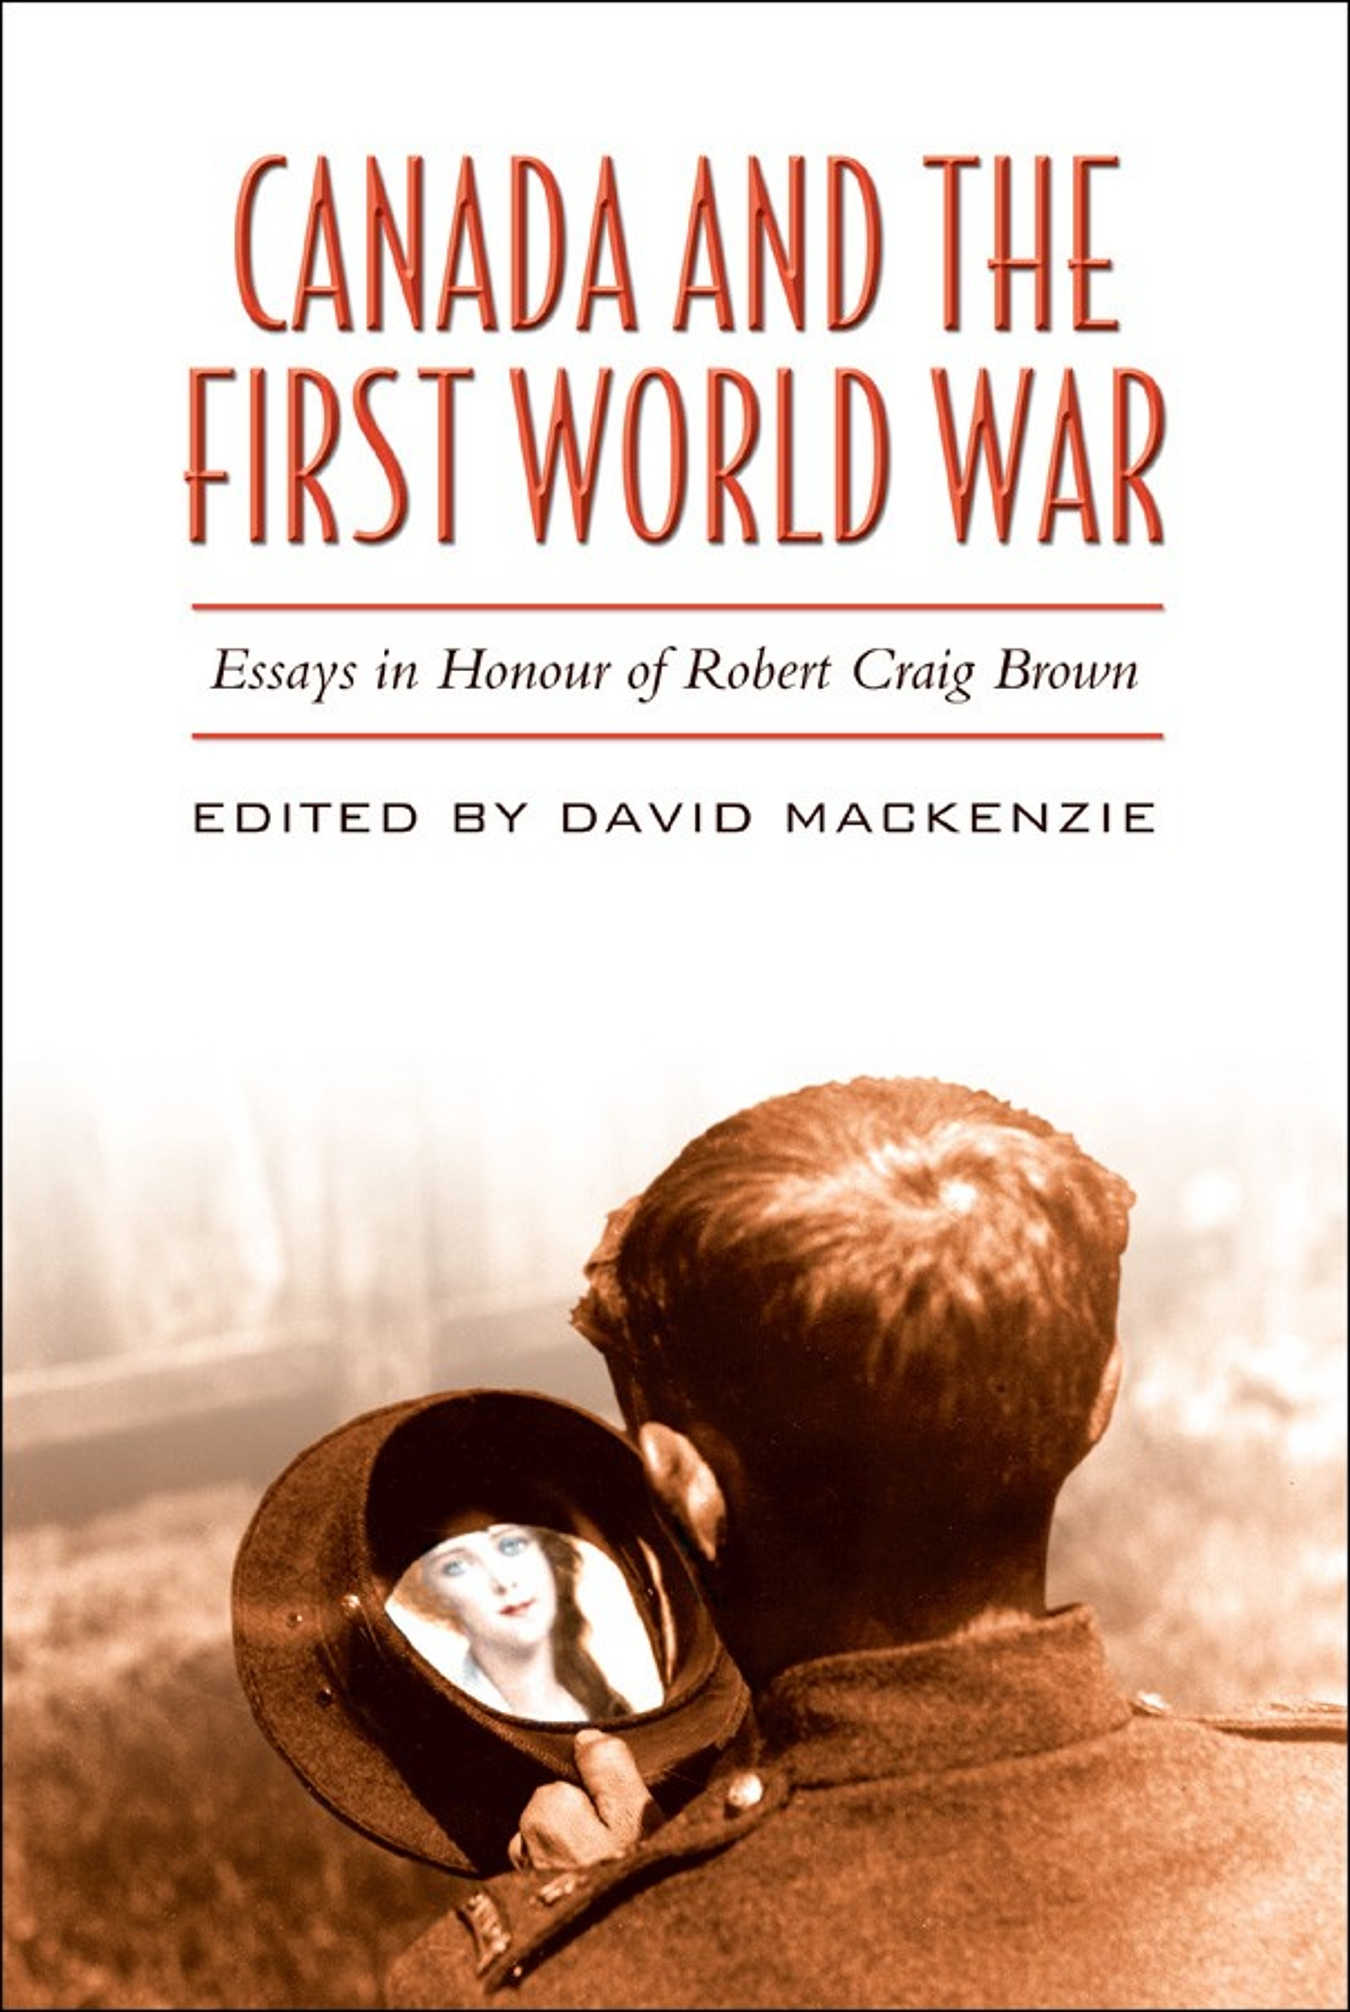 the first world war was the first modern war essay Her 1919 essay modern fiction elucidates what she and many of her contemporaries were trying to achieve in their attempt at catching life, her literary as references to the first world war begin to surface in the second and third section, it becomes rapidly apparent that time passes is a metaphor.